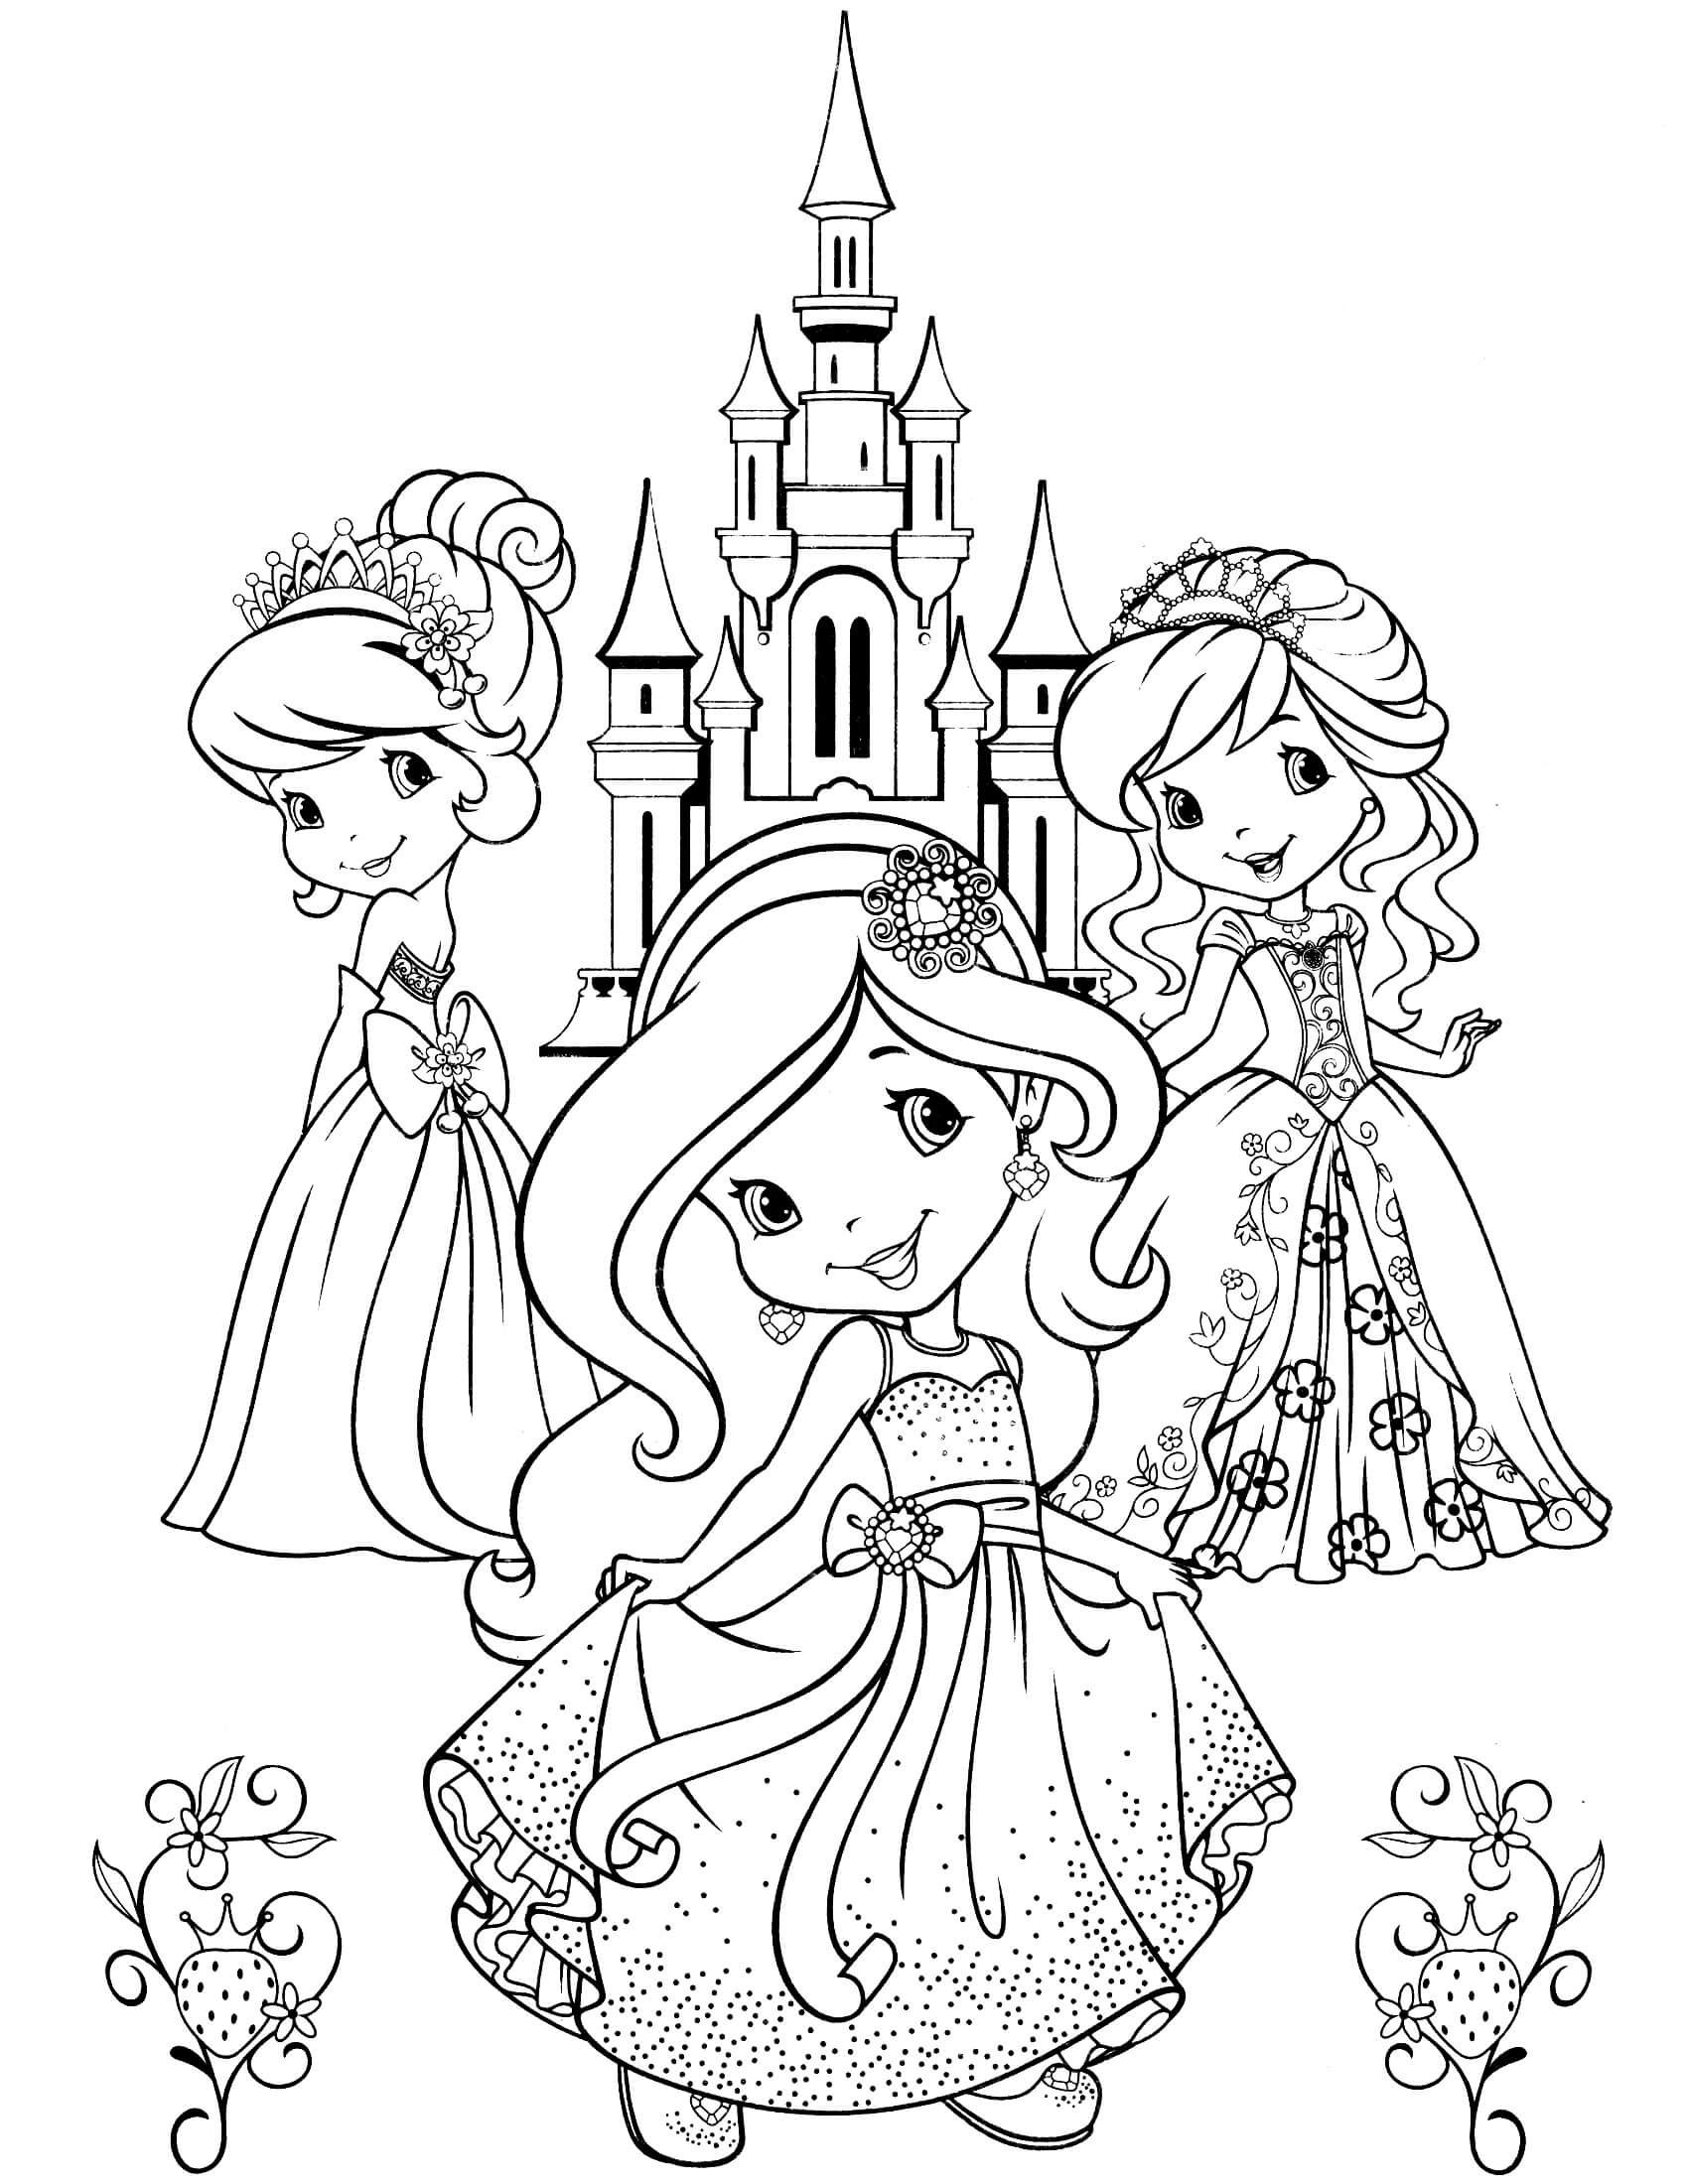 strawberry girl coloring pages princess strawberry shortcake coloring pages coloring girl strawberry pages